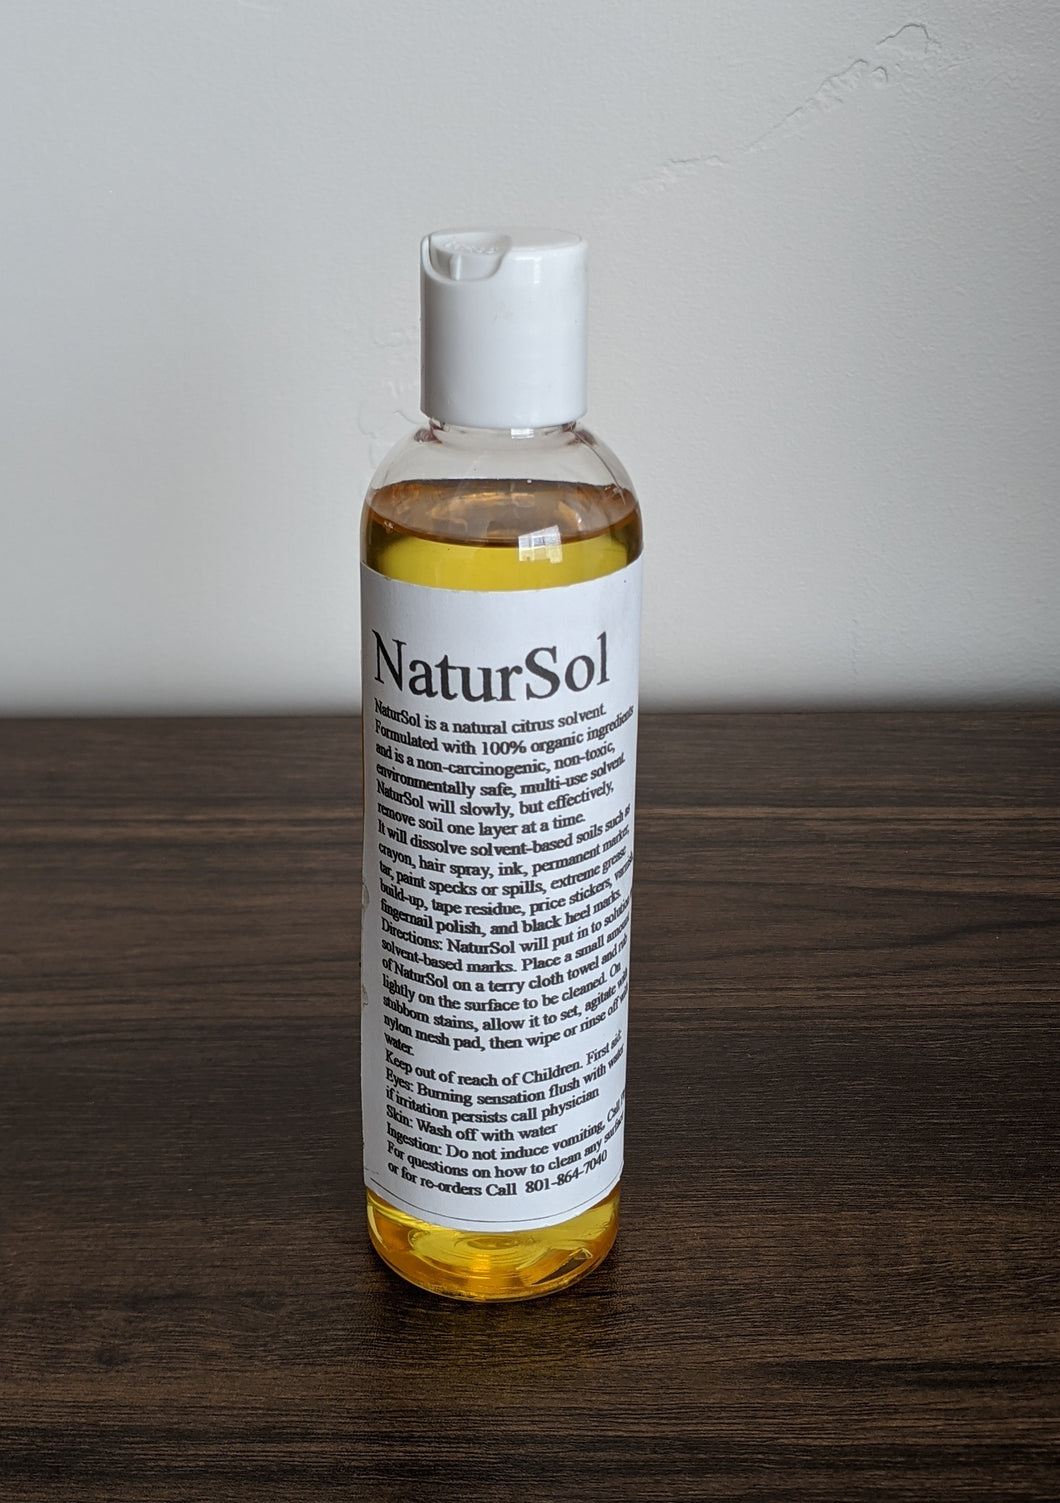 NaturSol - 8. Oz Bottle